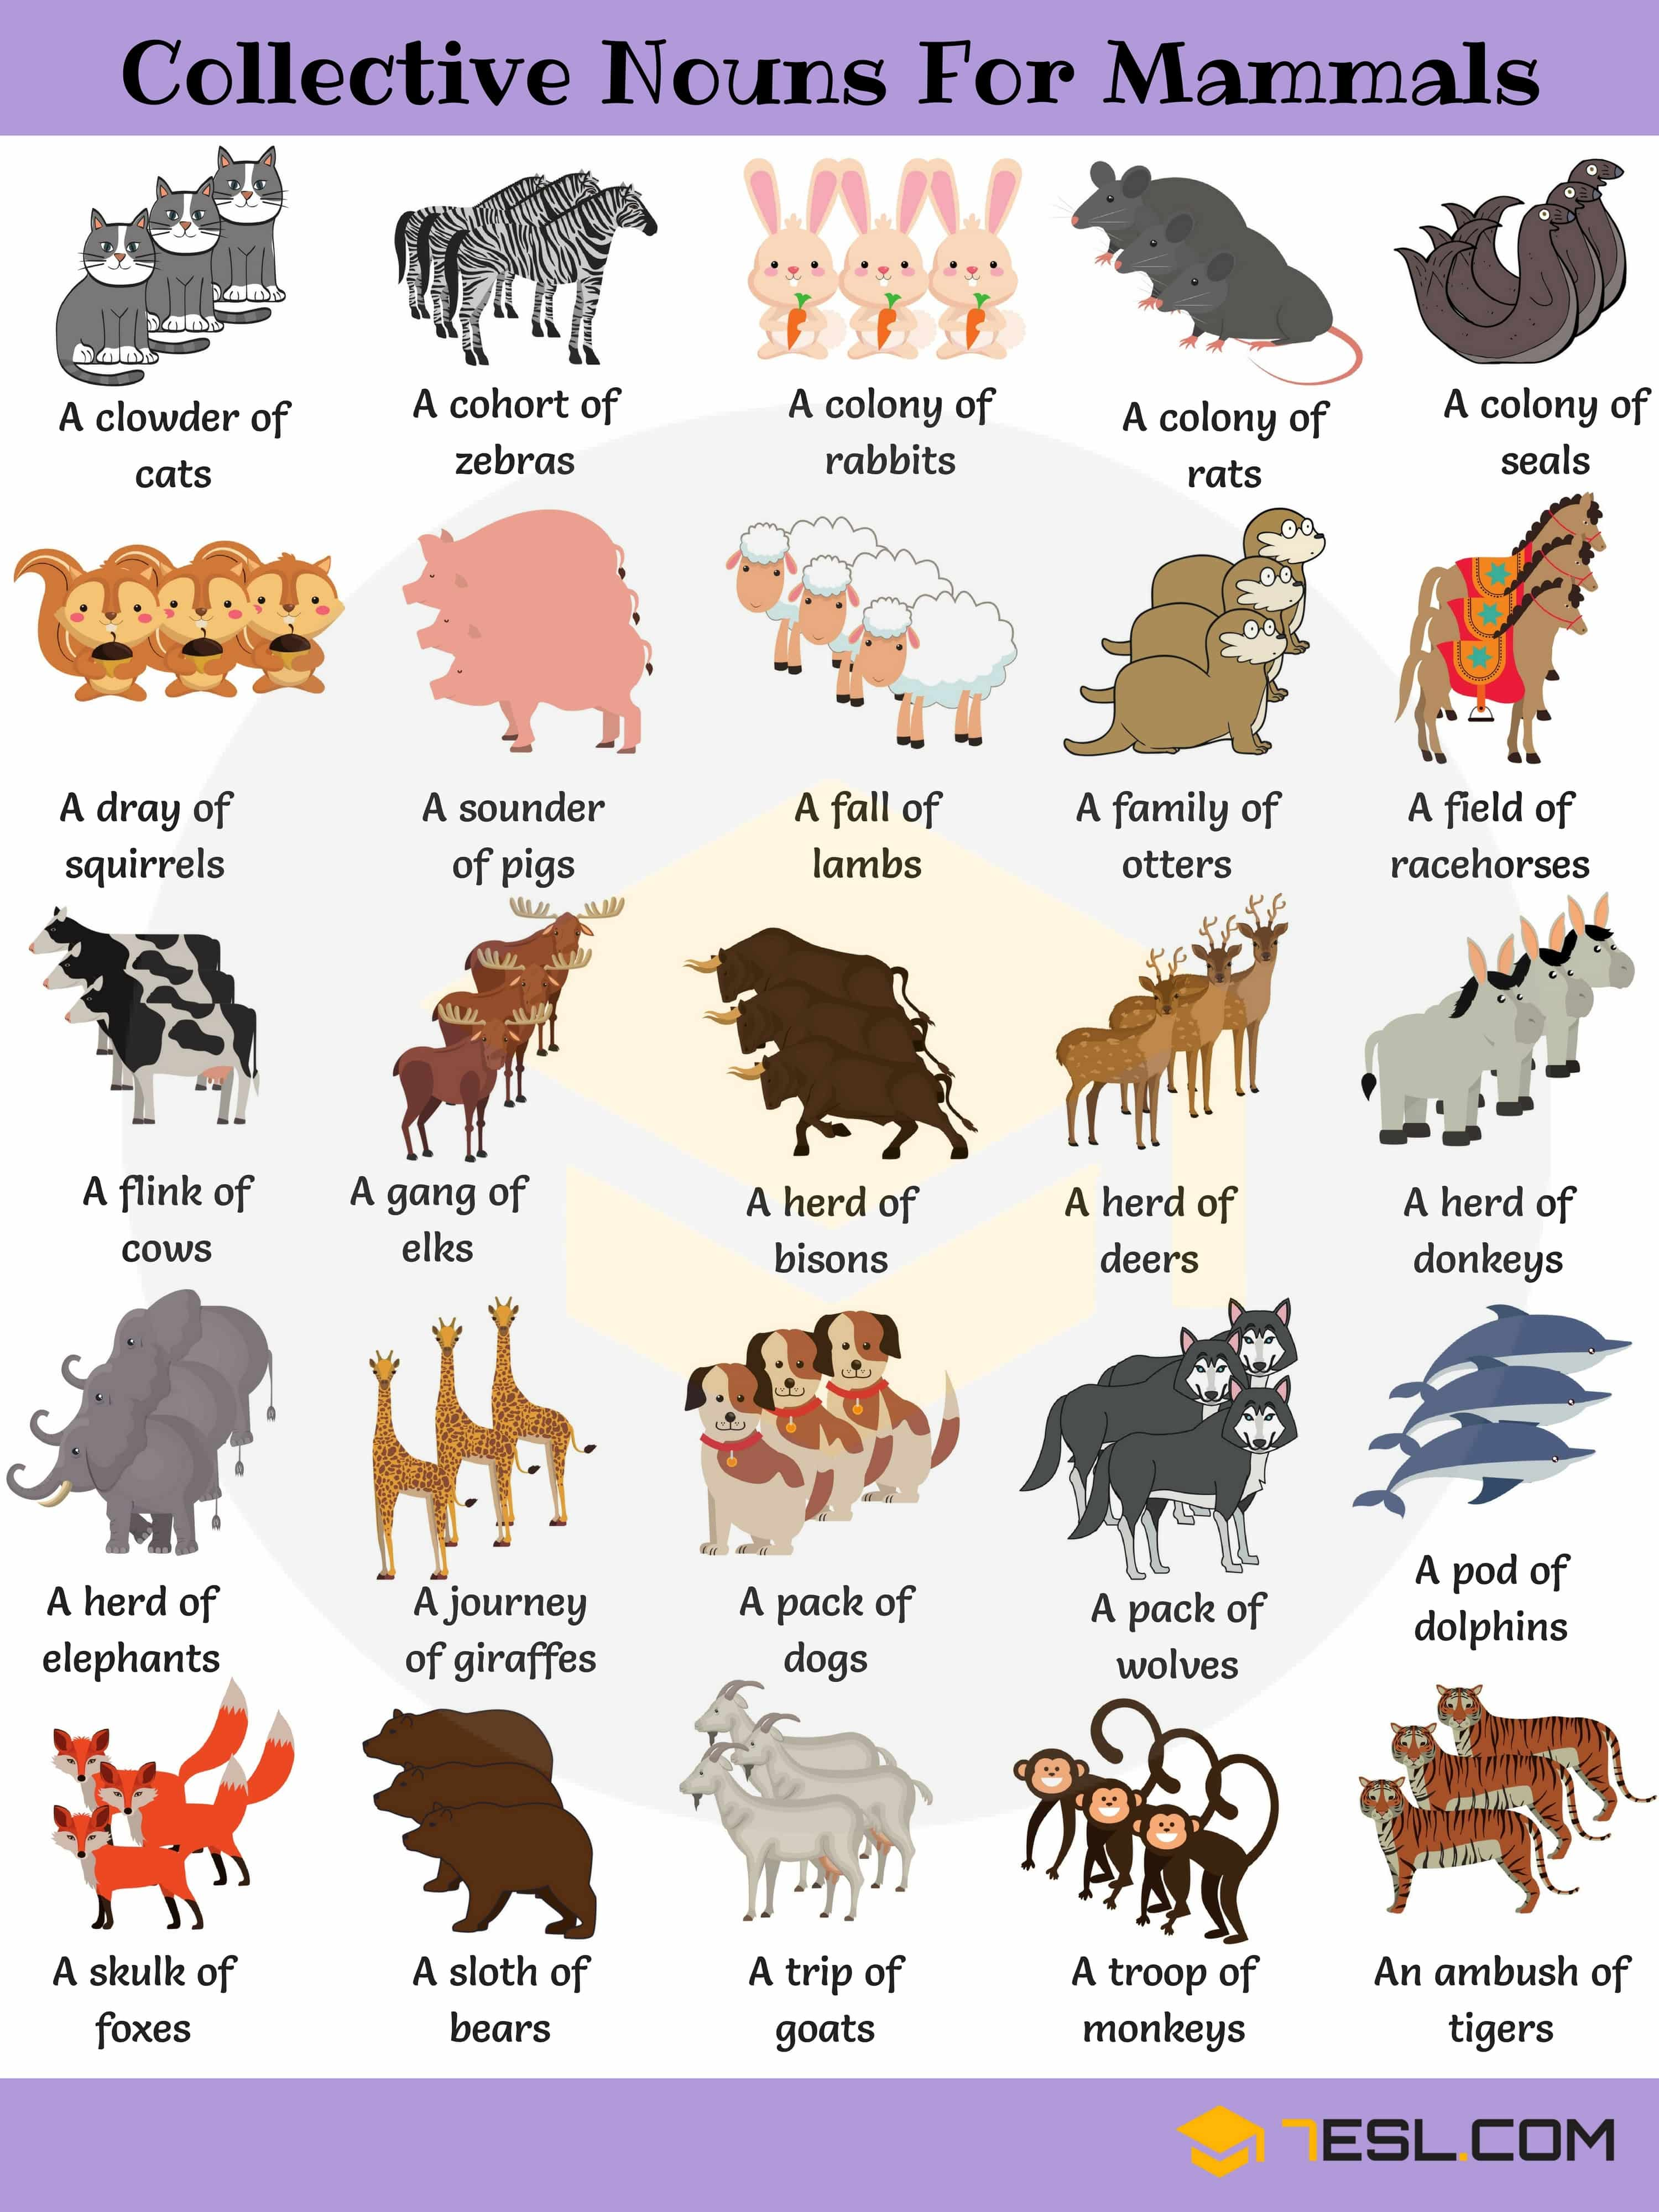 Animal Group Names 250 Collective Nouns For Animals